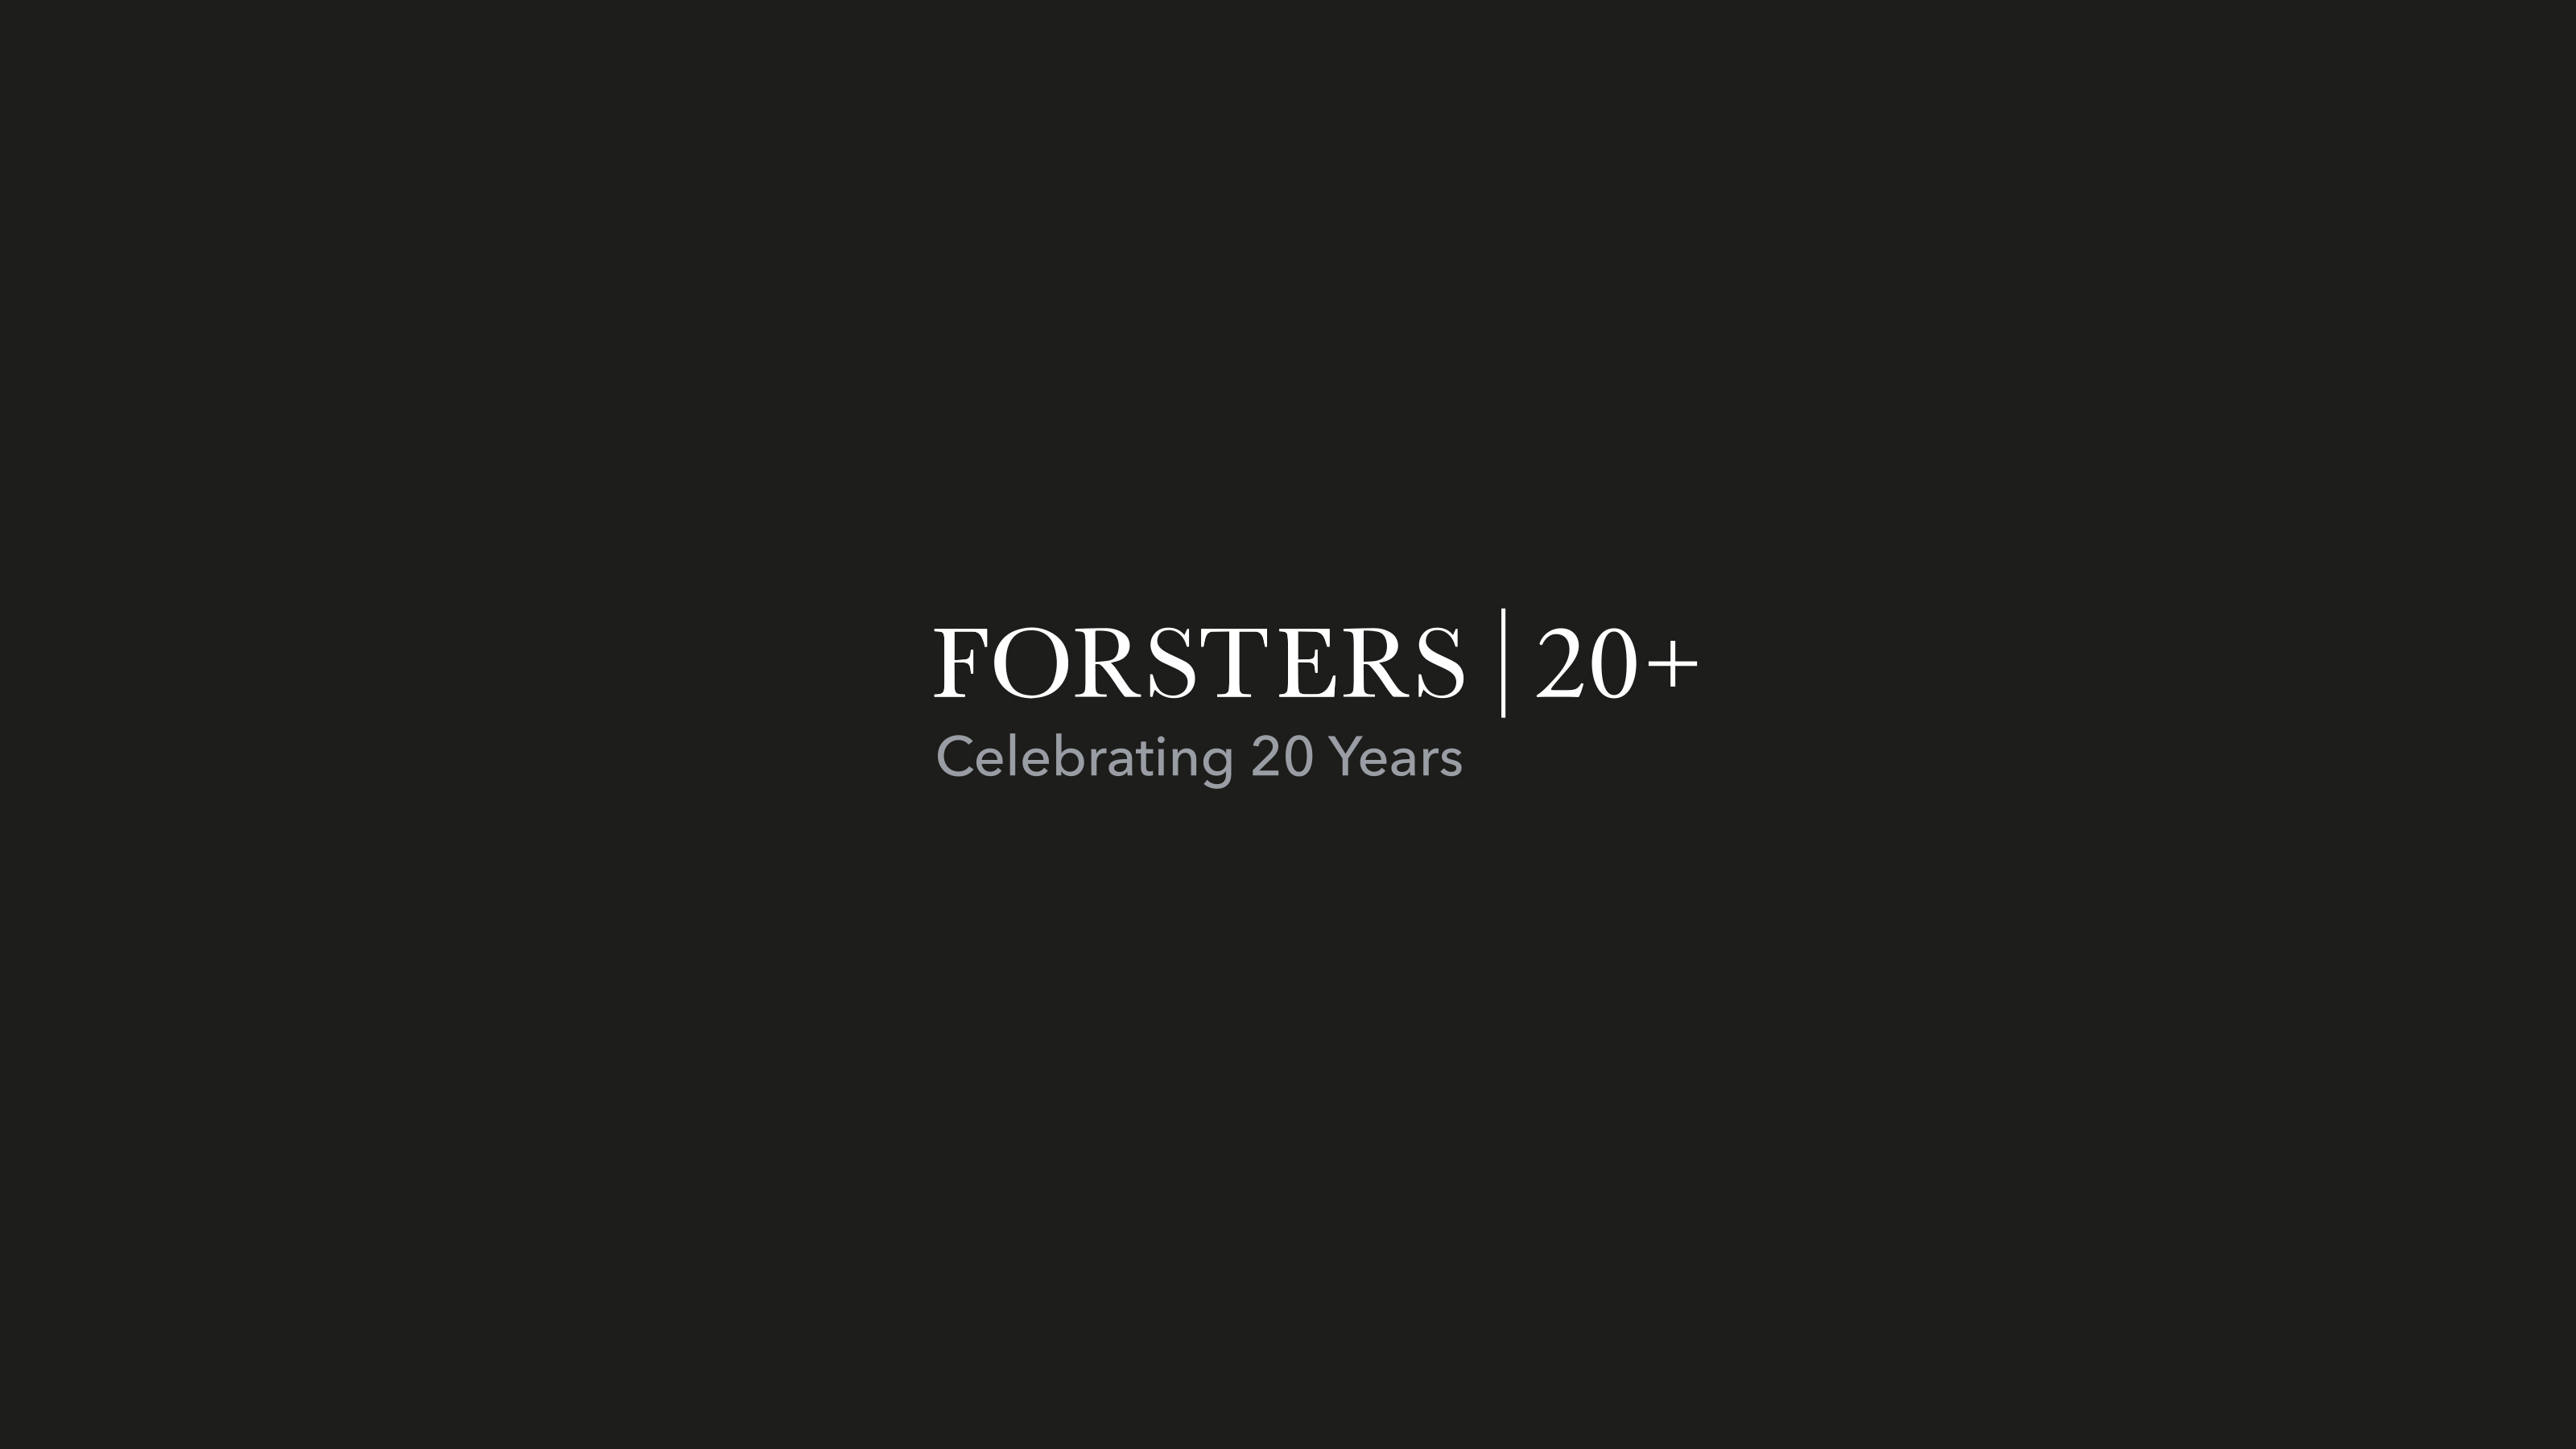 Brand logotype Forsters